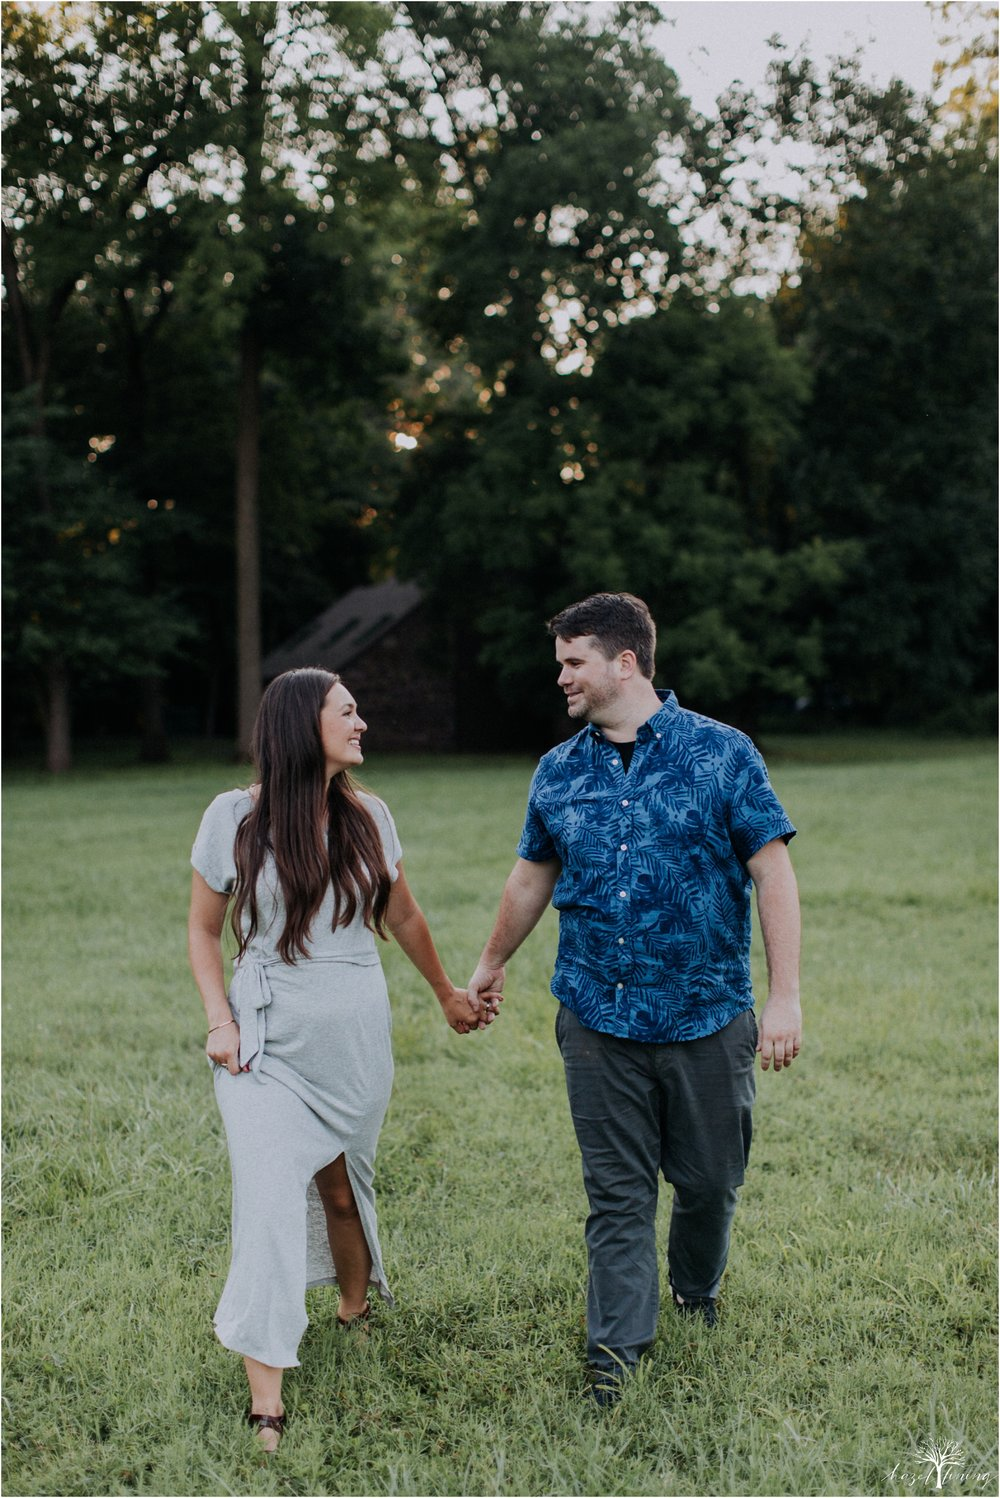 kelsey-delaney-kevin-jordan-tyler-state-park-newtown-pennsylvania-golden-hour-sunset-engagement-session-hazel-lining-travel-wedding-elopement-photography_0107.jpg